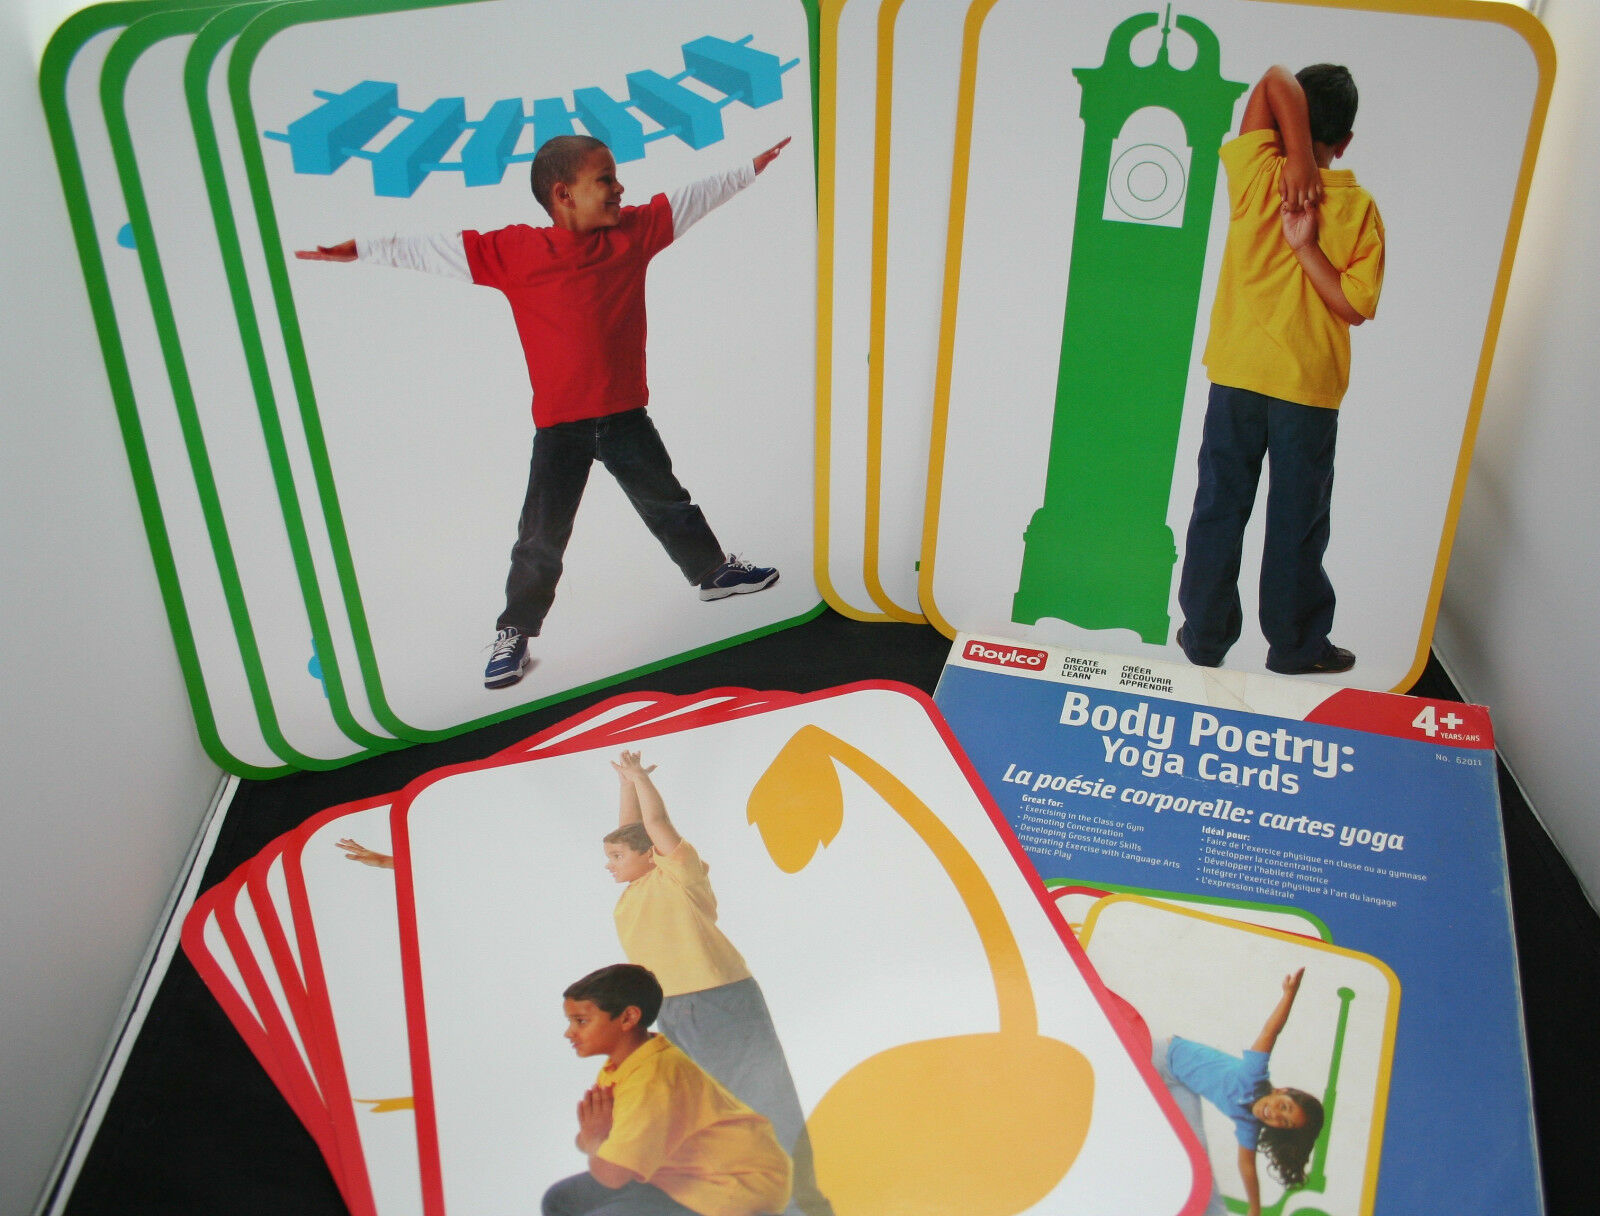 Roylco Body Poetry Illustrated Yoga Cards Cards Yoga with Instructions - 16 Big Cards ec763c